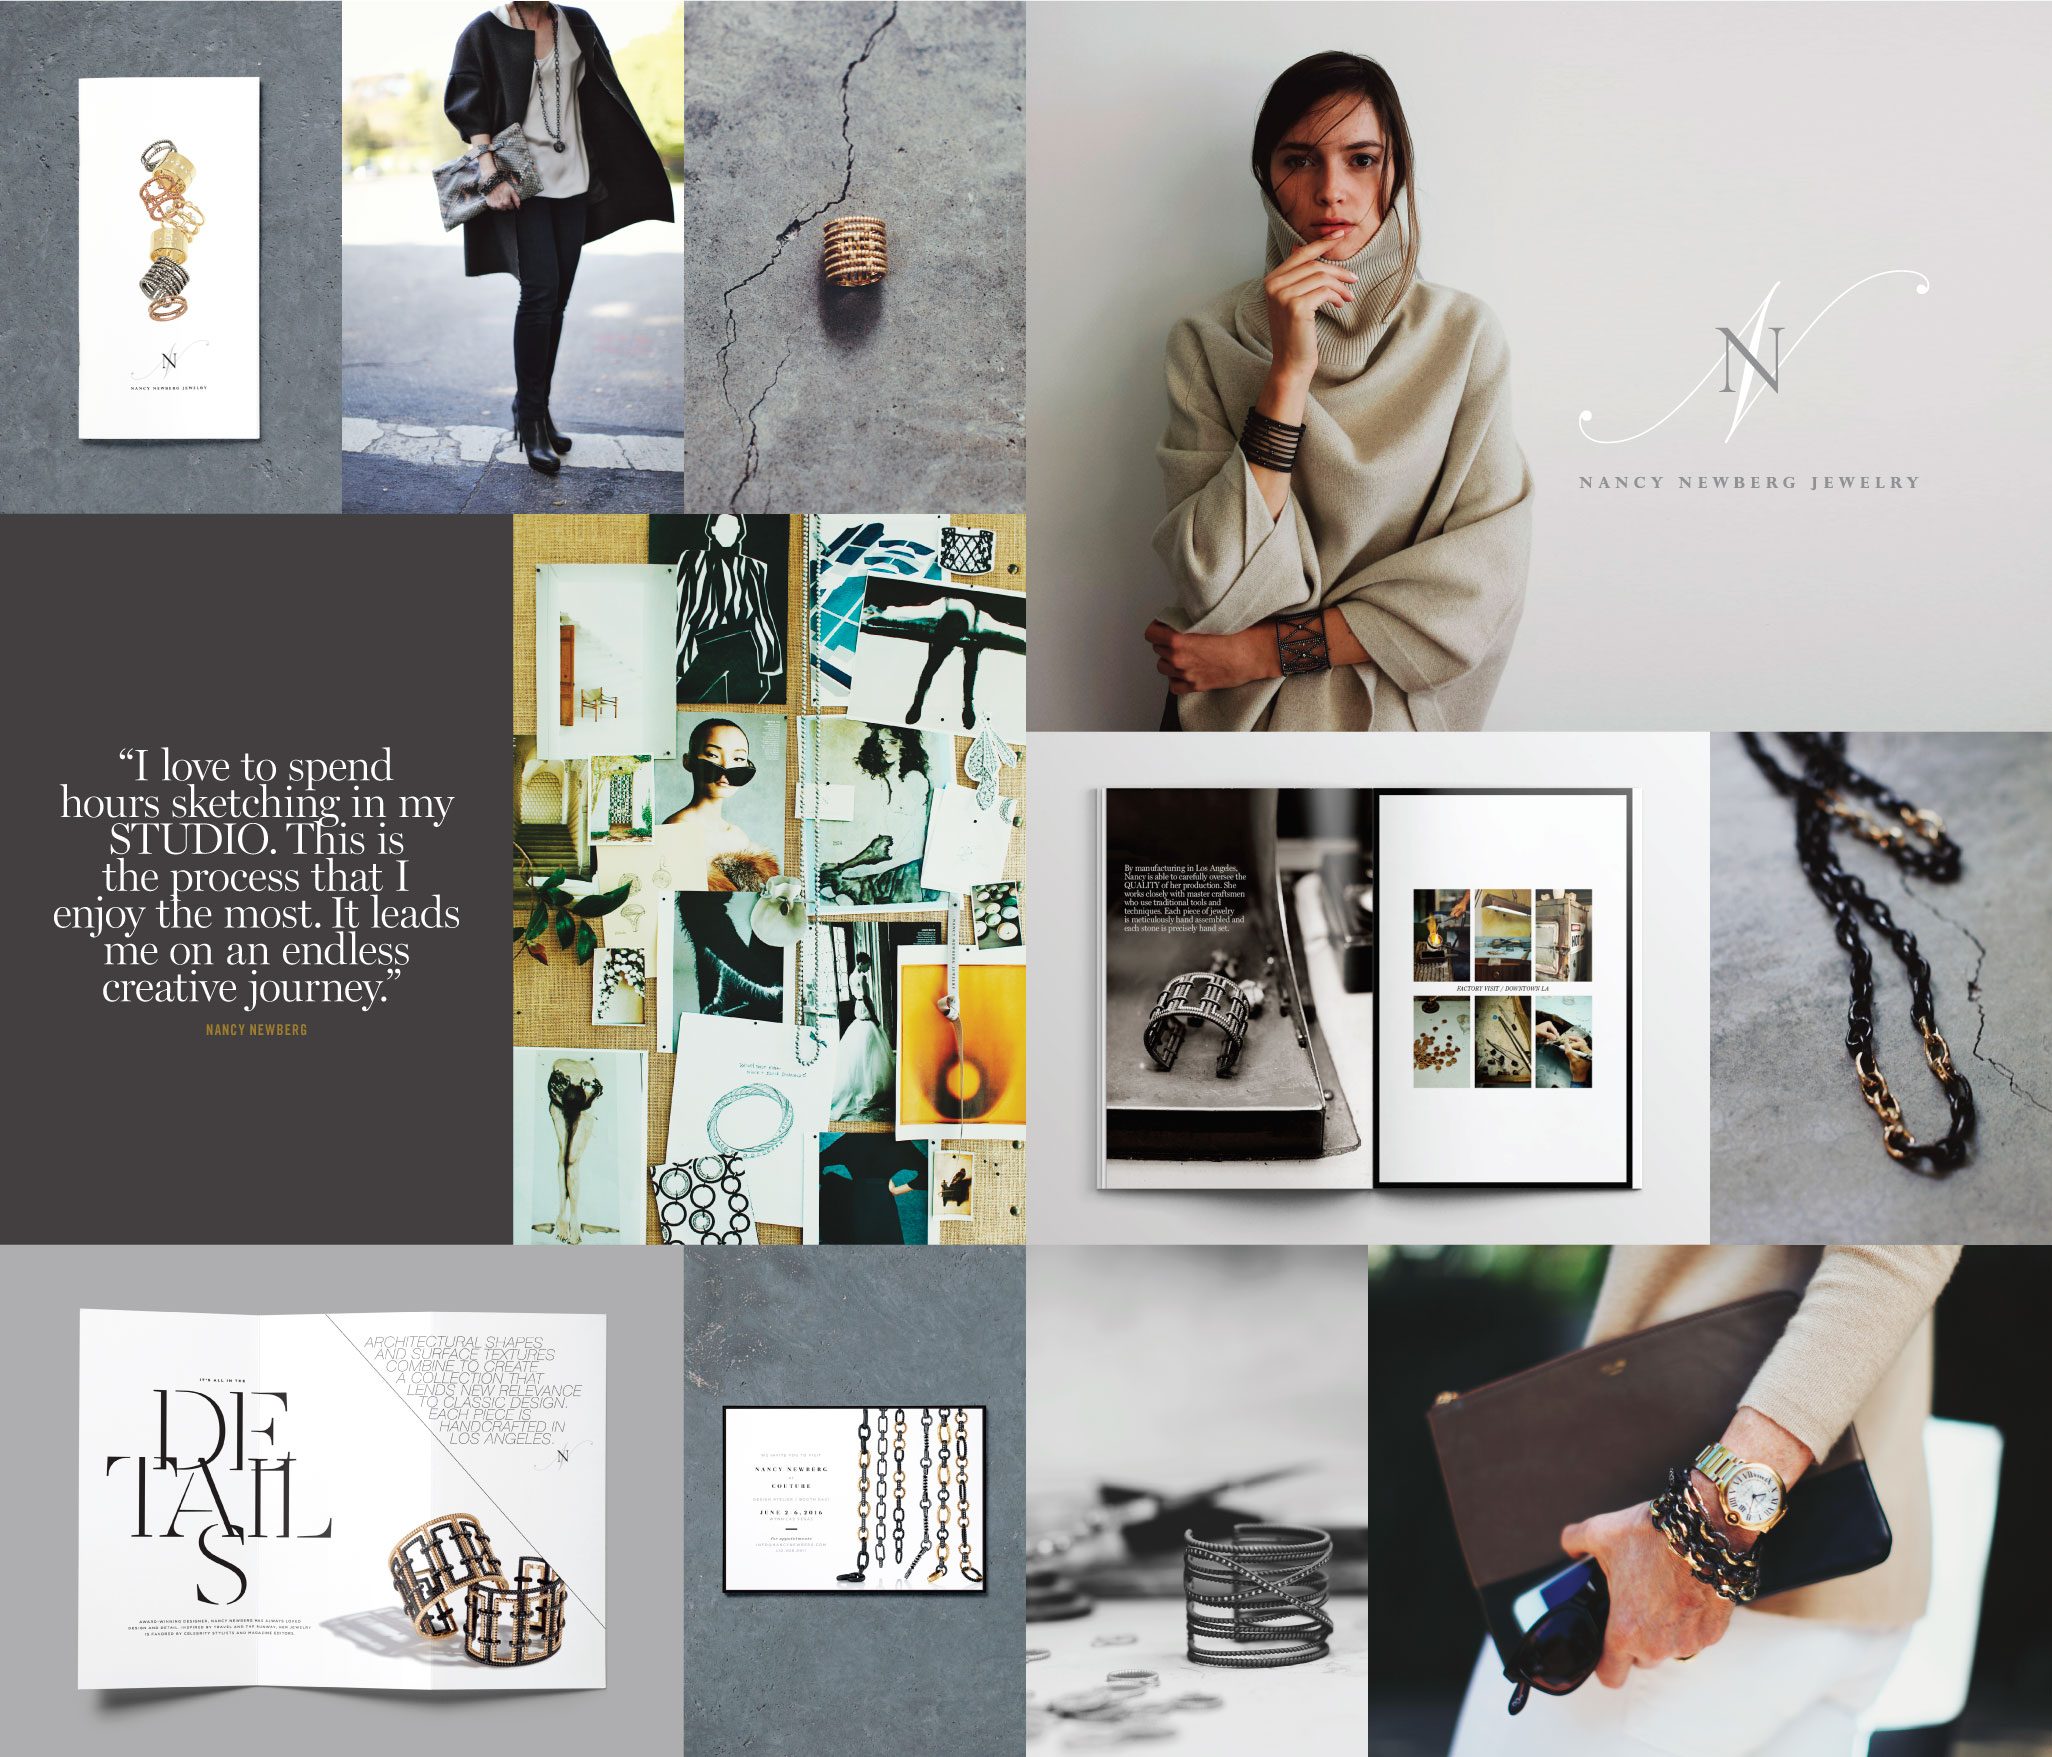 Peggy Wong Studio / branding design and photography for Nancy Newberg Jewelry